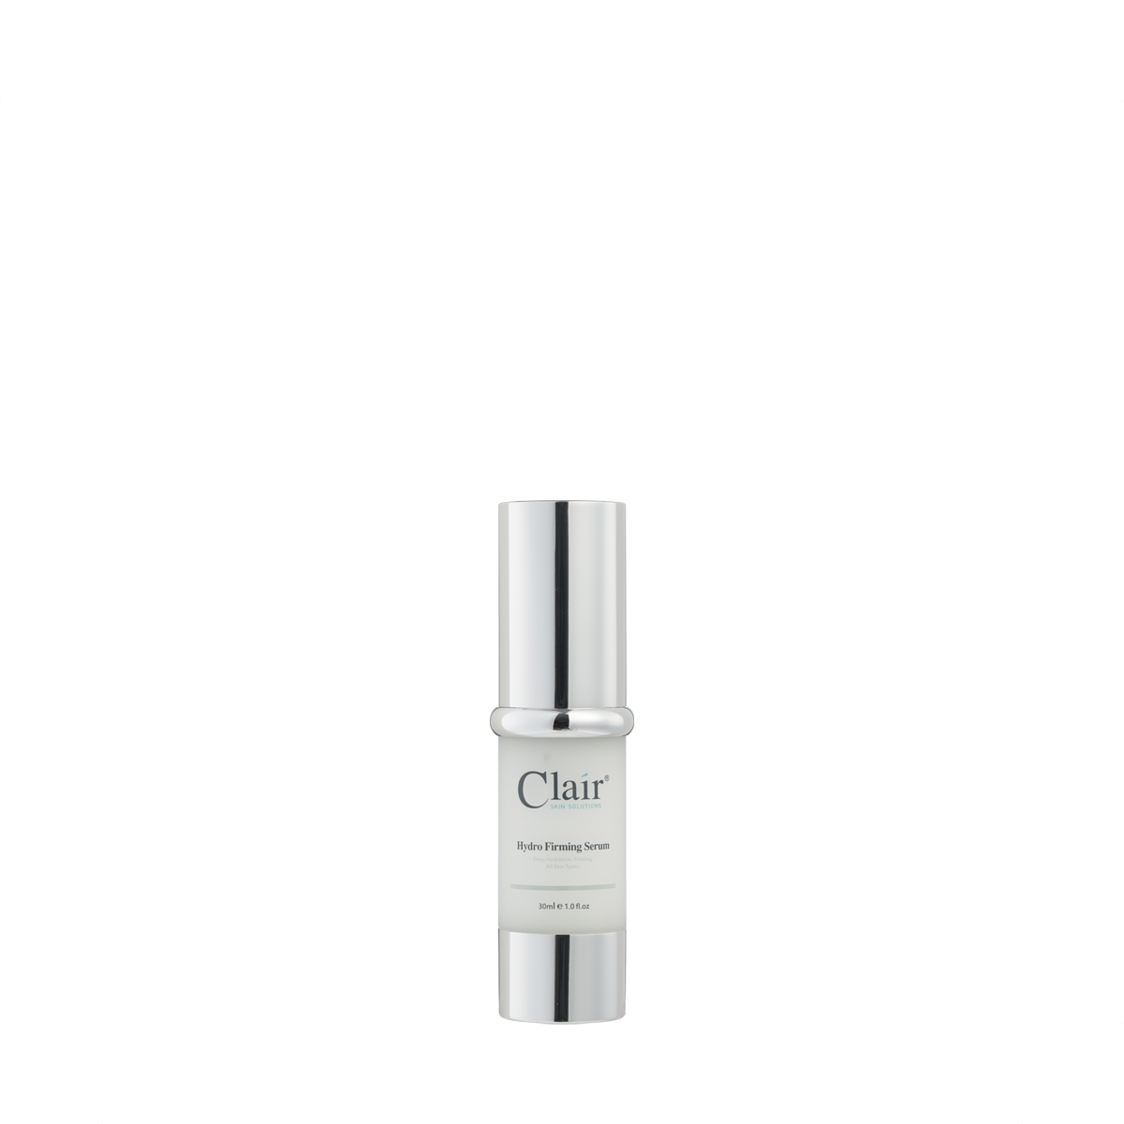 Hydro Firming Serum 30ml